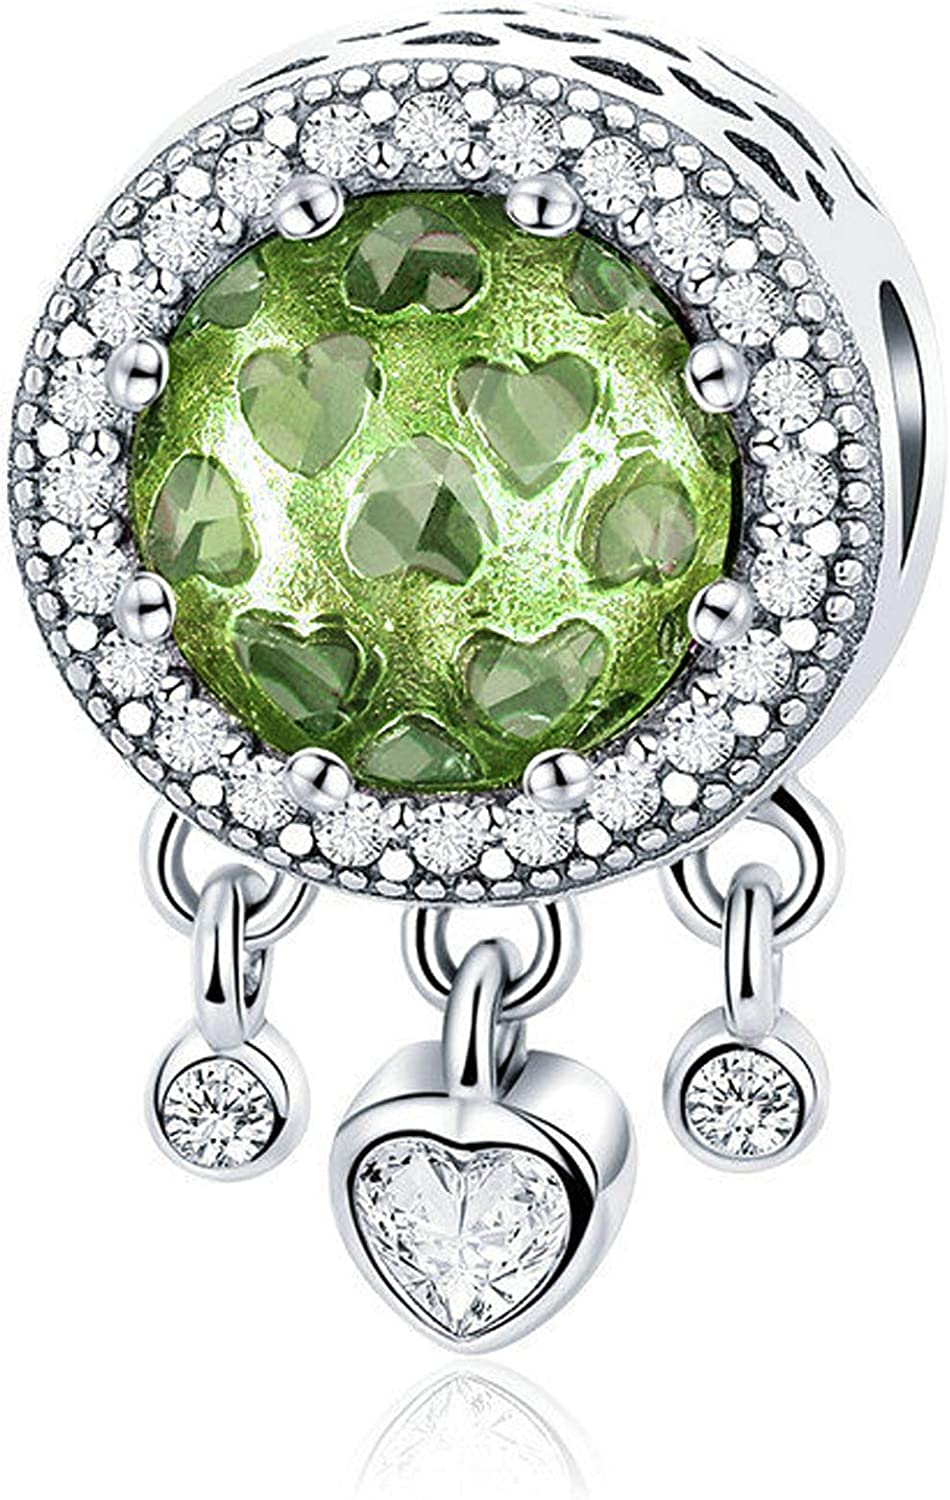 Muerdou Birthstone Charm Fit Pandora Charms Bracelets And Necklaces Birthday Gifts For Woman Girl Amazon Co Uk Jewellery